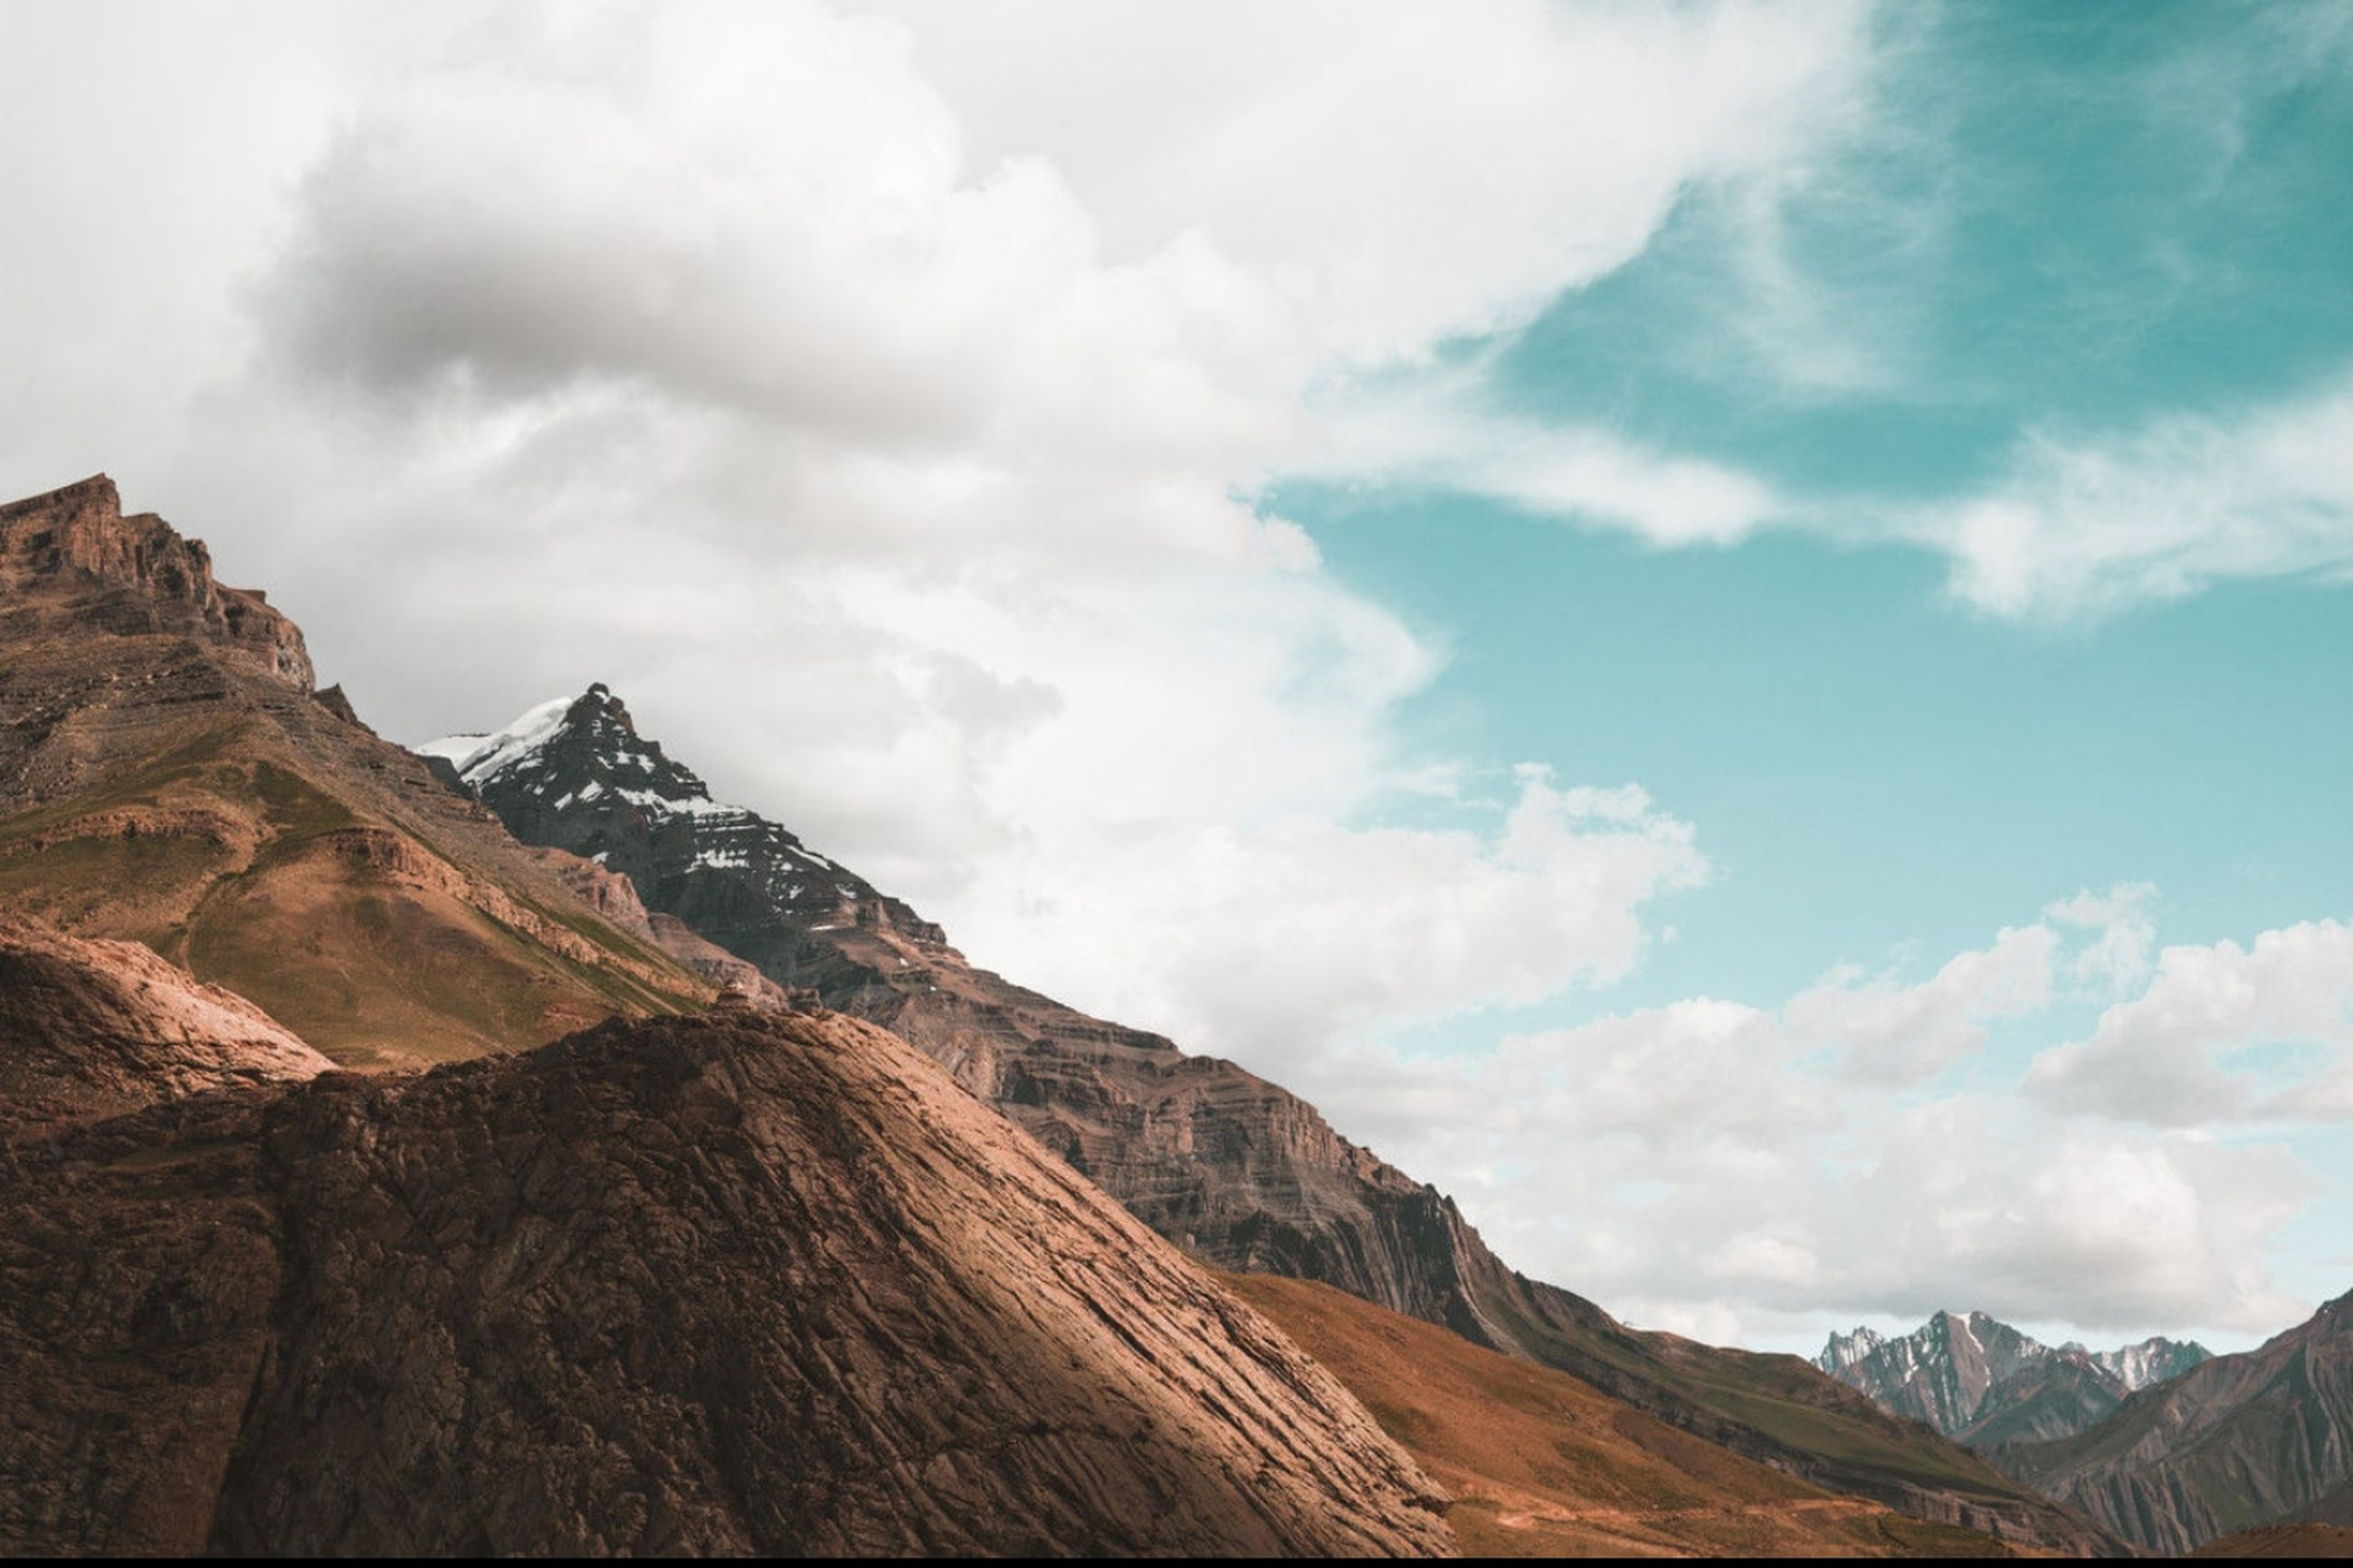 mountain, sky, cloud - sky, beauty in nature, environment, scenics - nature, nature, mountain range, landscape, no people, rock, tranquil scene, non-urban scene, tranquility, day, mountain peak, land, formation, travel, scenery, high, range, eroded, height